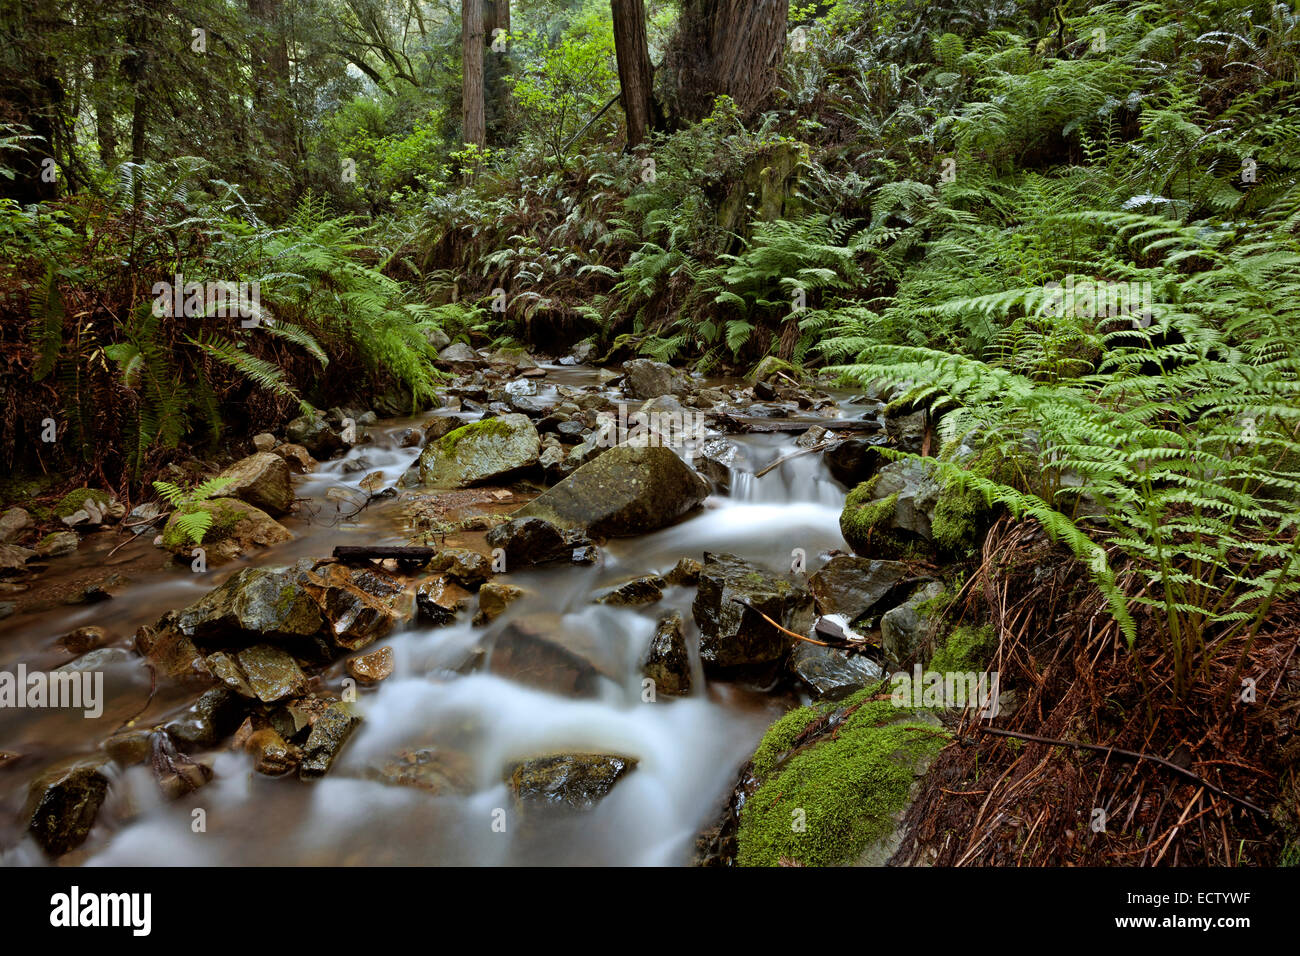 CA02567-00...CALIFORNIA -  Webb Creek viewed from the Steep Ravine Trail in Mount Tamalpais State Park. - Stock Image